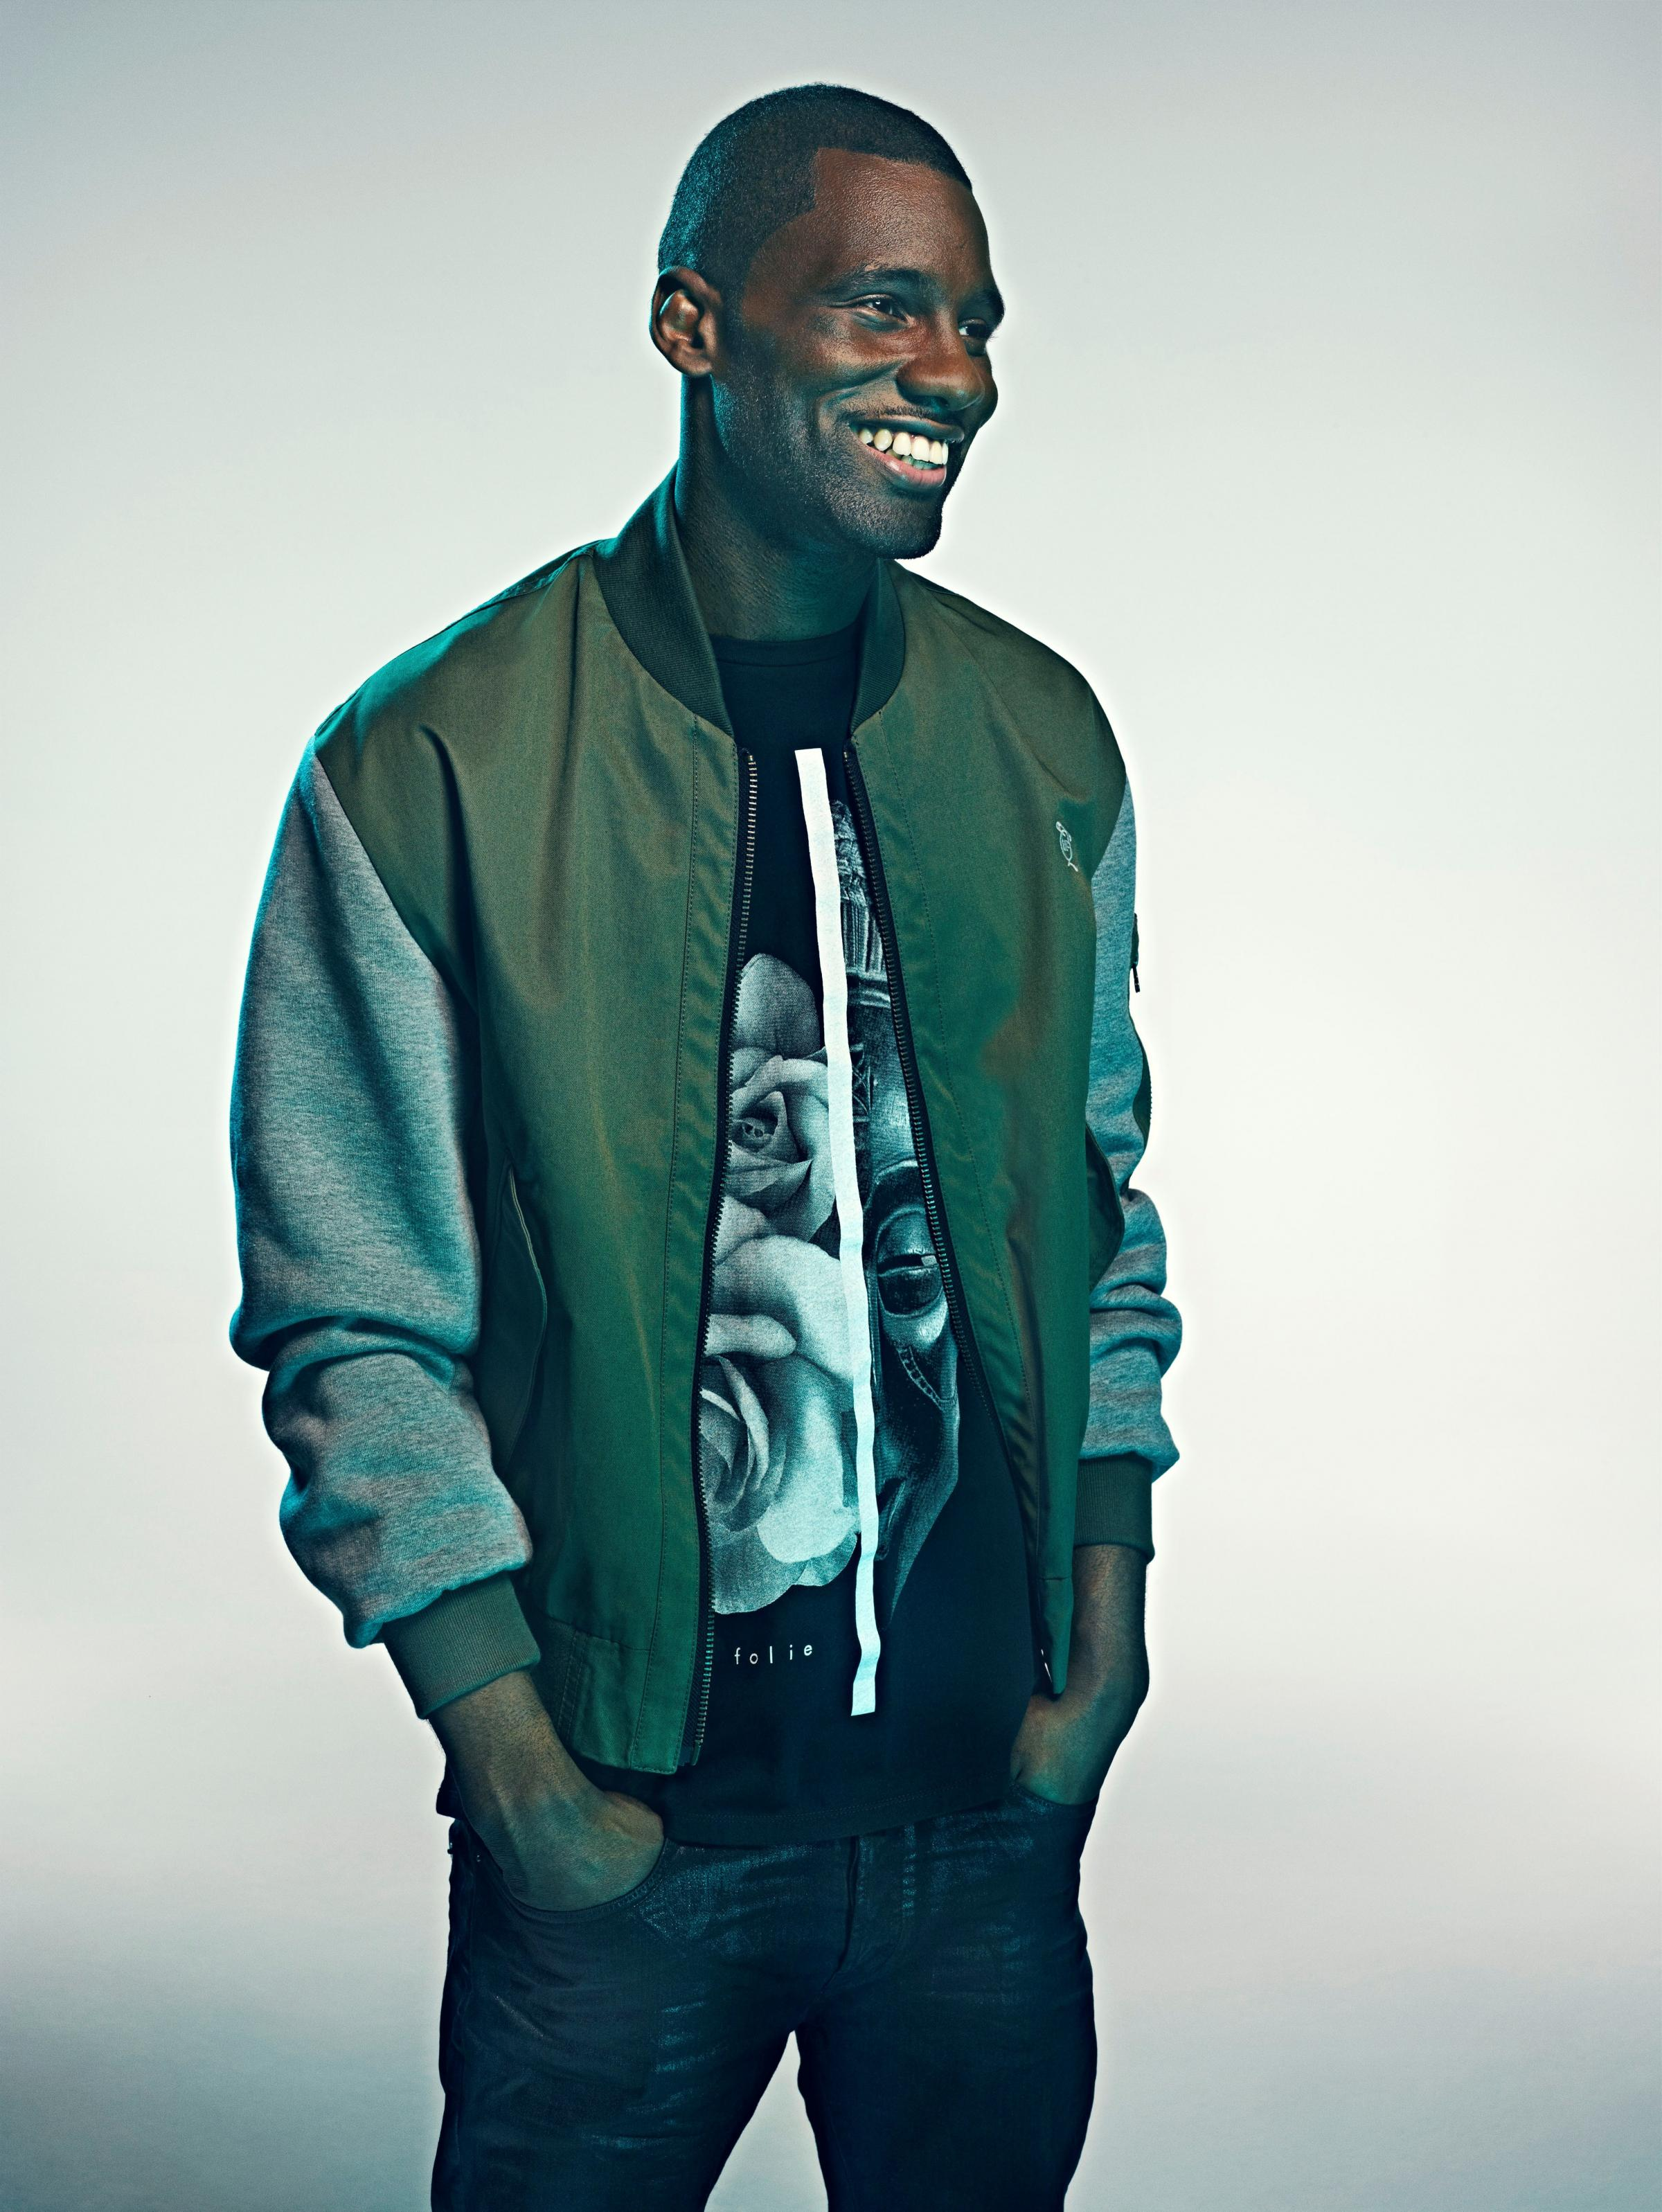 Wretch 32 real name Jermaine Scott Sinclair. Phott: Rick Guest